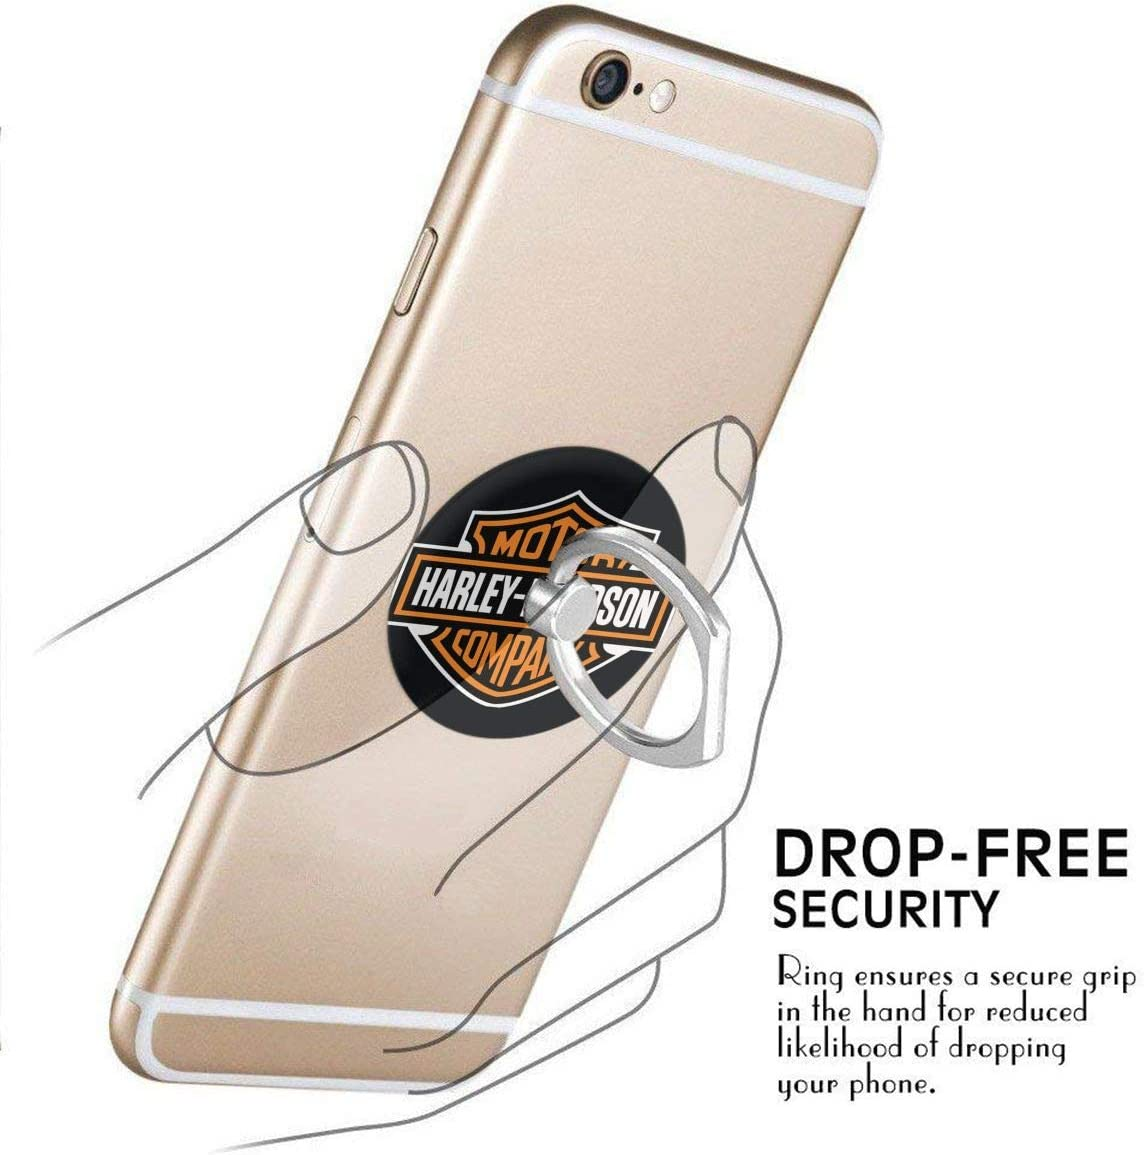 iPhone Or Tablets BBABC Harley Davidson Logo 360 Degree Rotating Ring Stand Grip Mounts Phone Holder for Any Smartphones